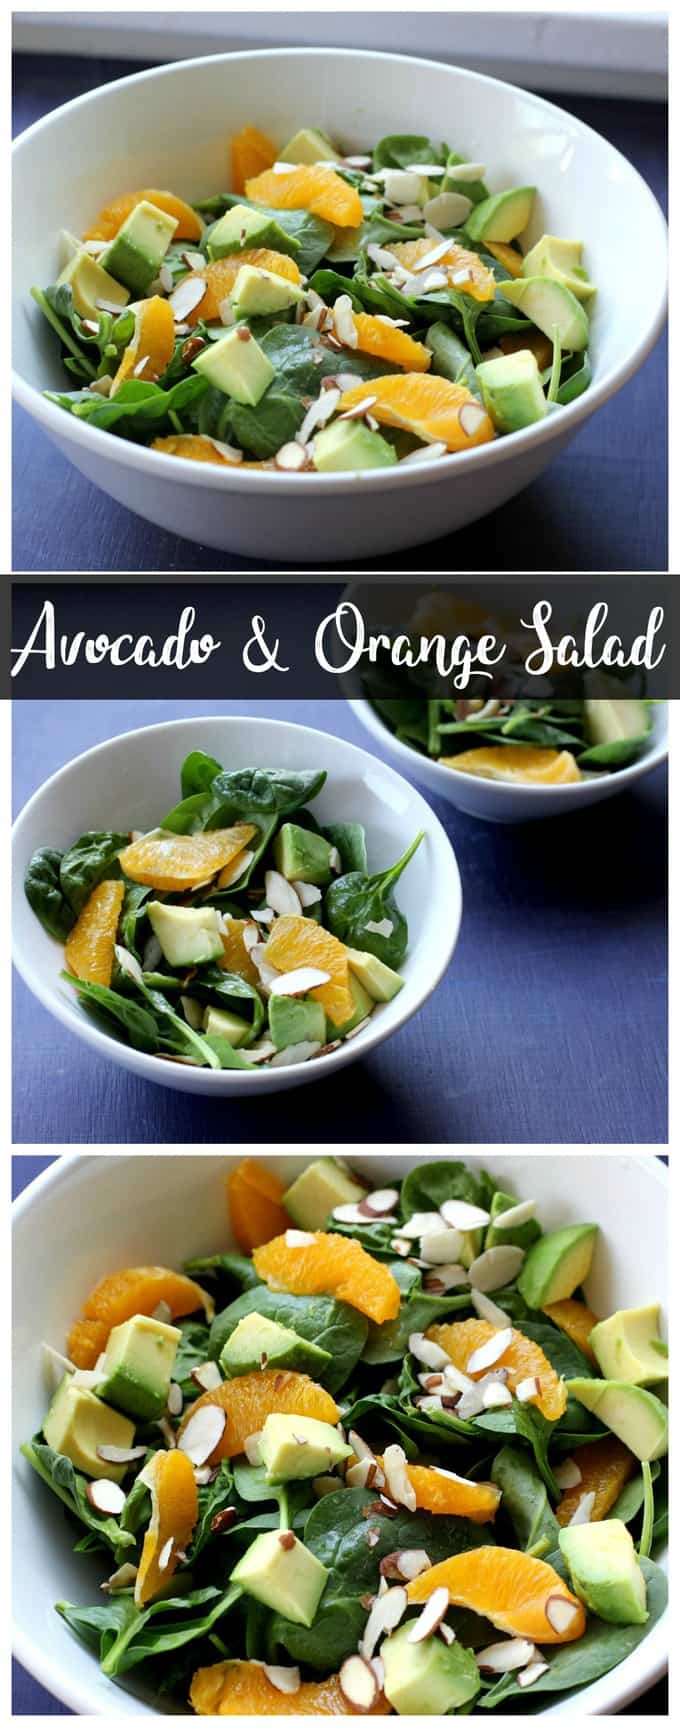 The creamy avocado and sweet orange slices give this spinach salad a wonderful flavor! It\'s an easy weeknight side dish! #salad #vegetarian #vegan